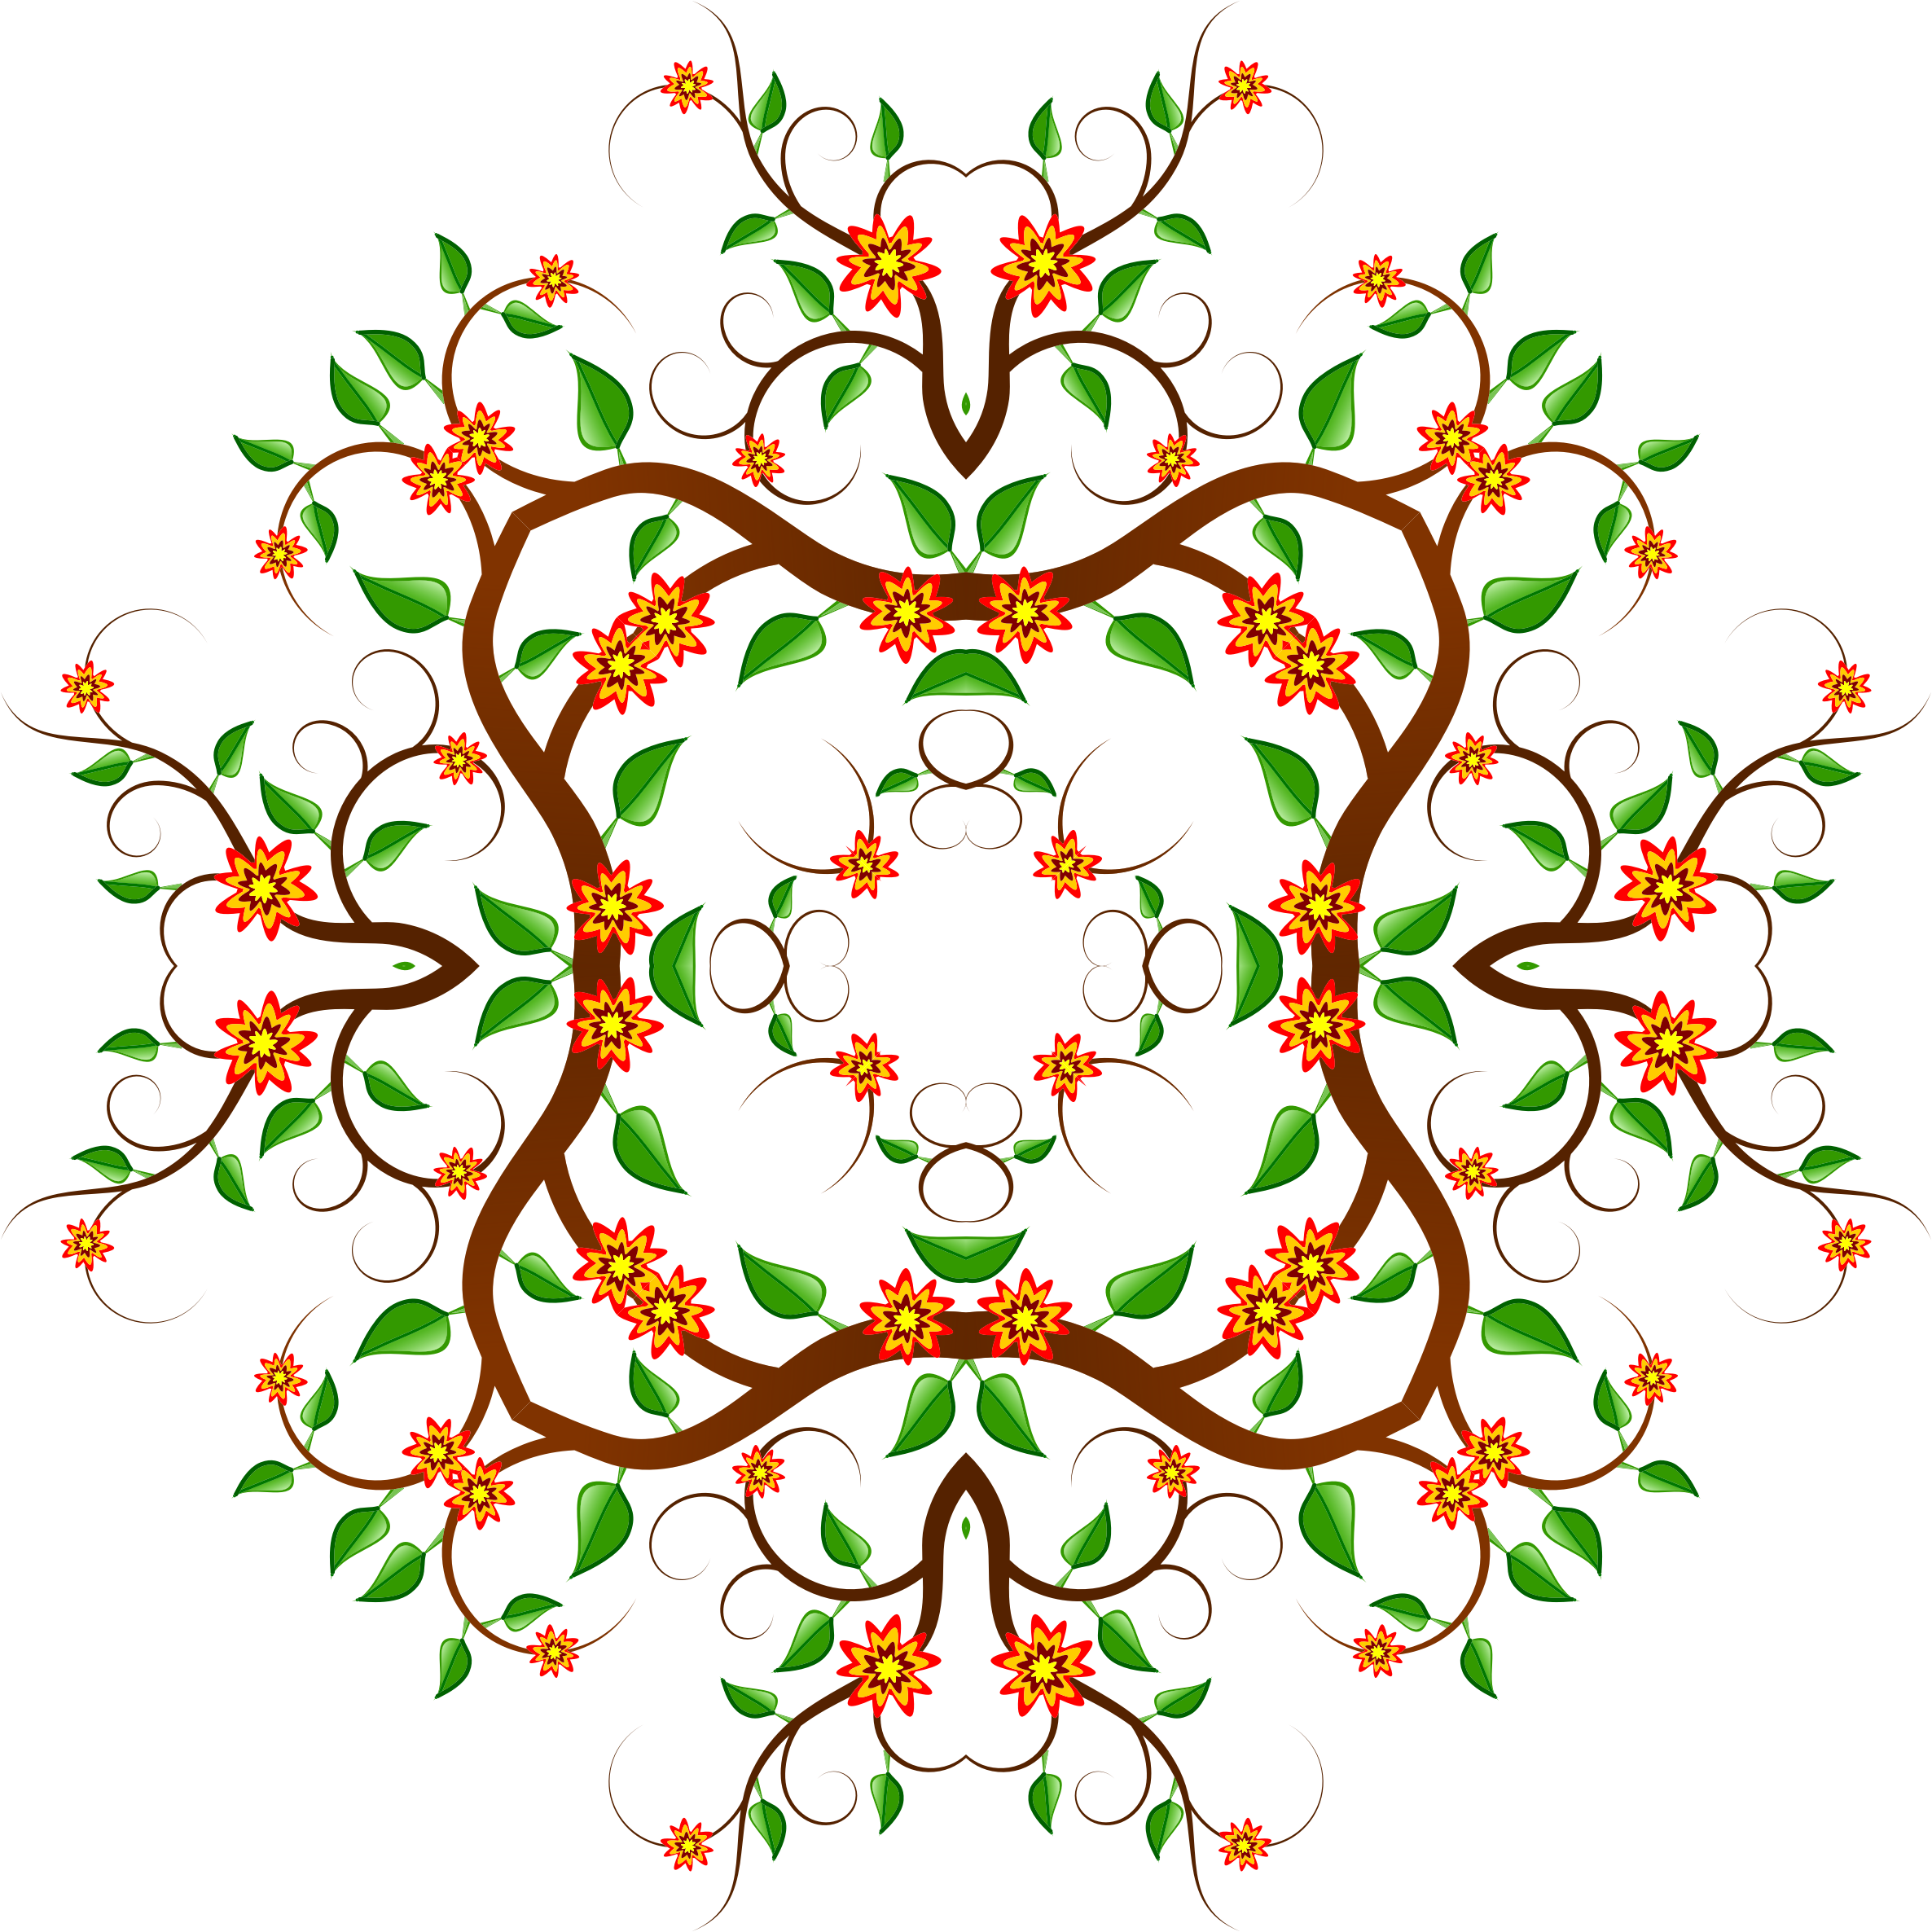 Floral Tree Design 5 by GDJ